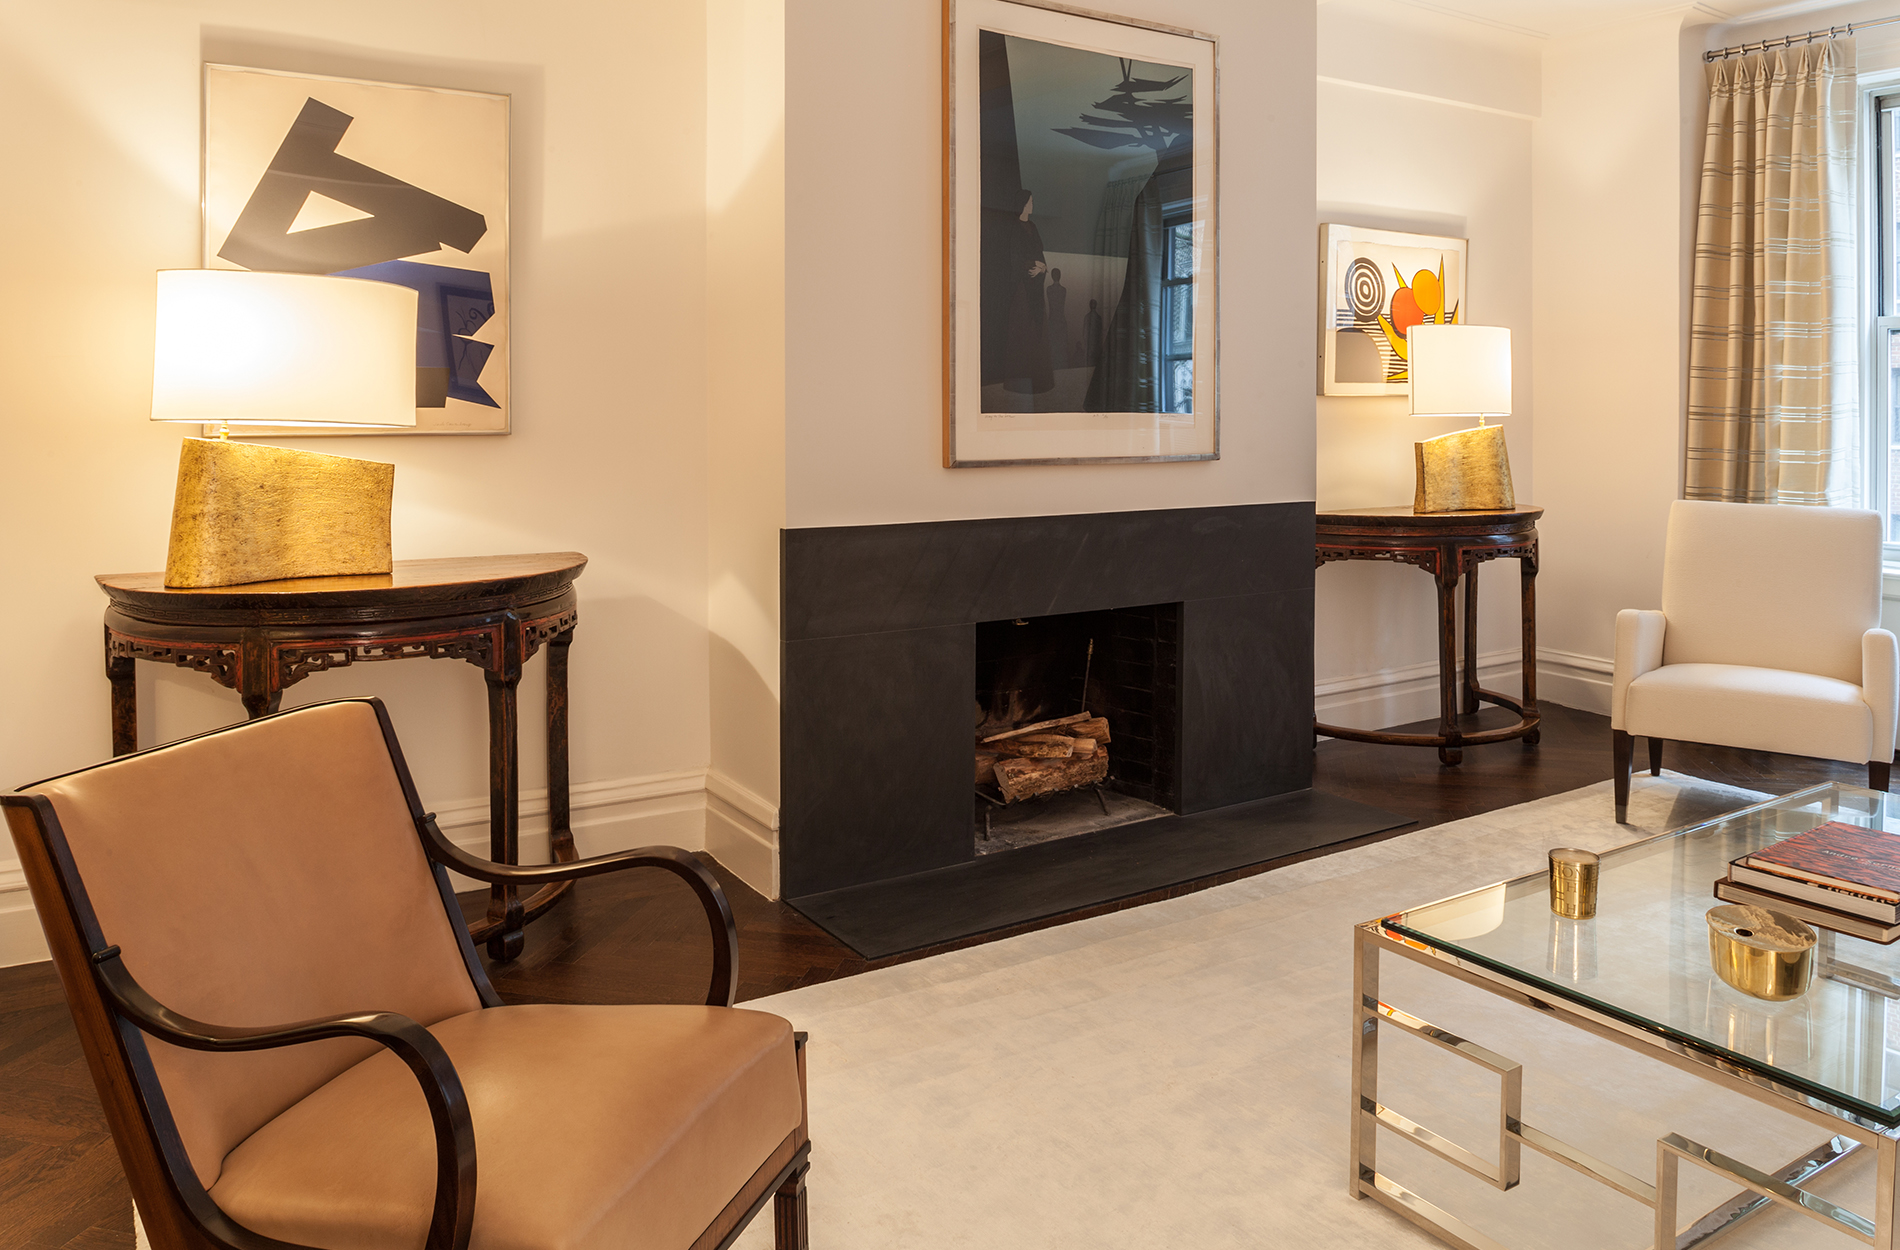 transitional | brett design inc | nyc interior design, furniture